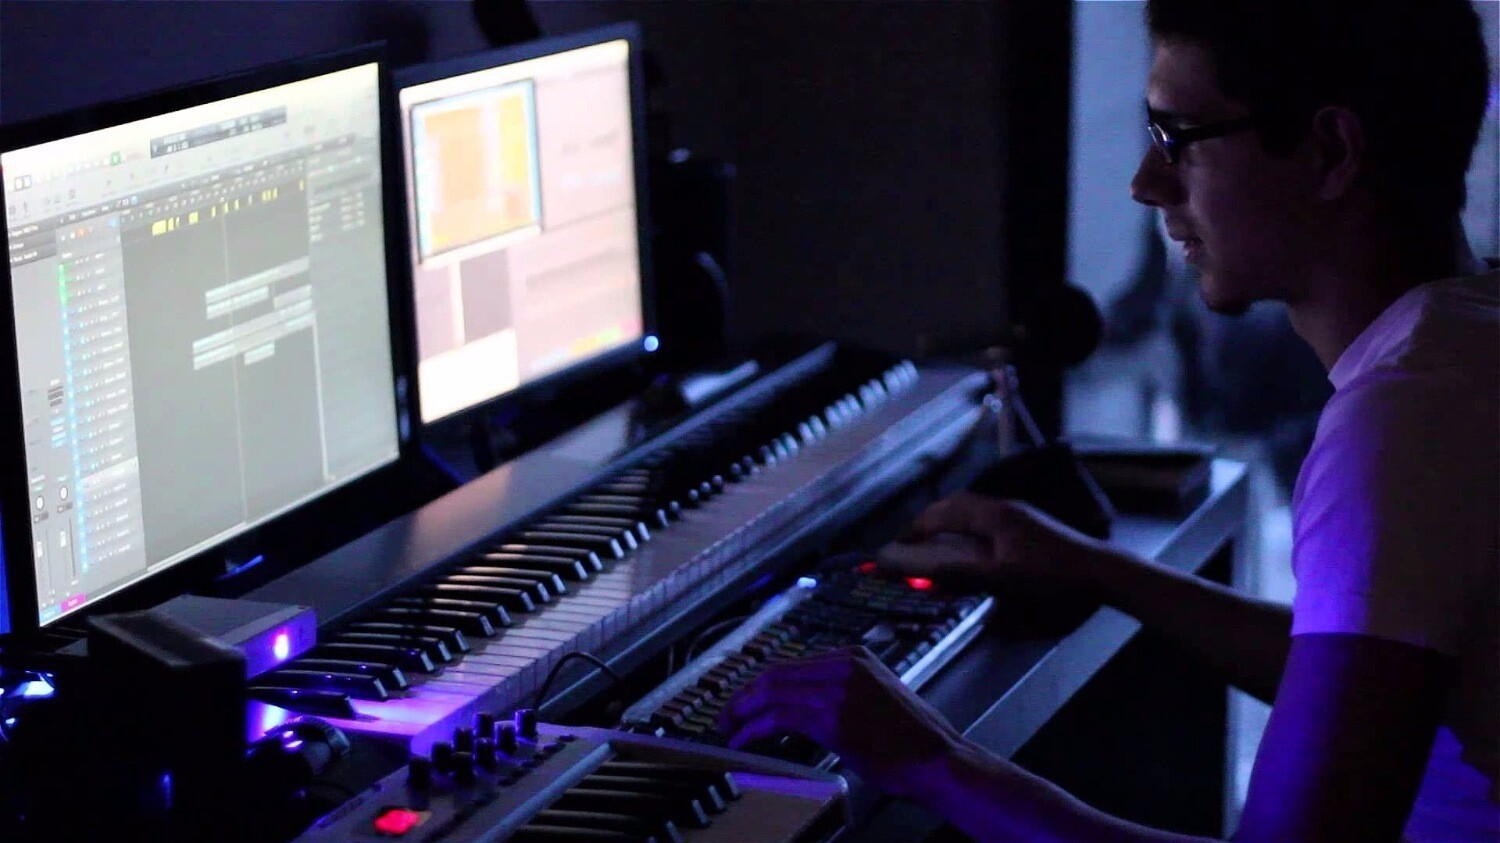 music composer Ai music composer create the perfect soundtrack for your content amper is an artificial intelligence composer, performer, and producer that empowers you to instantly create and customize.